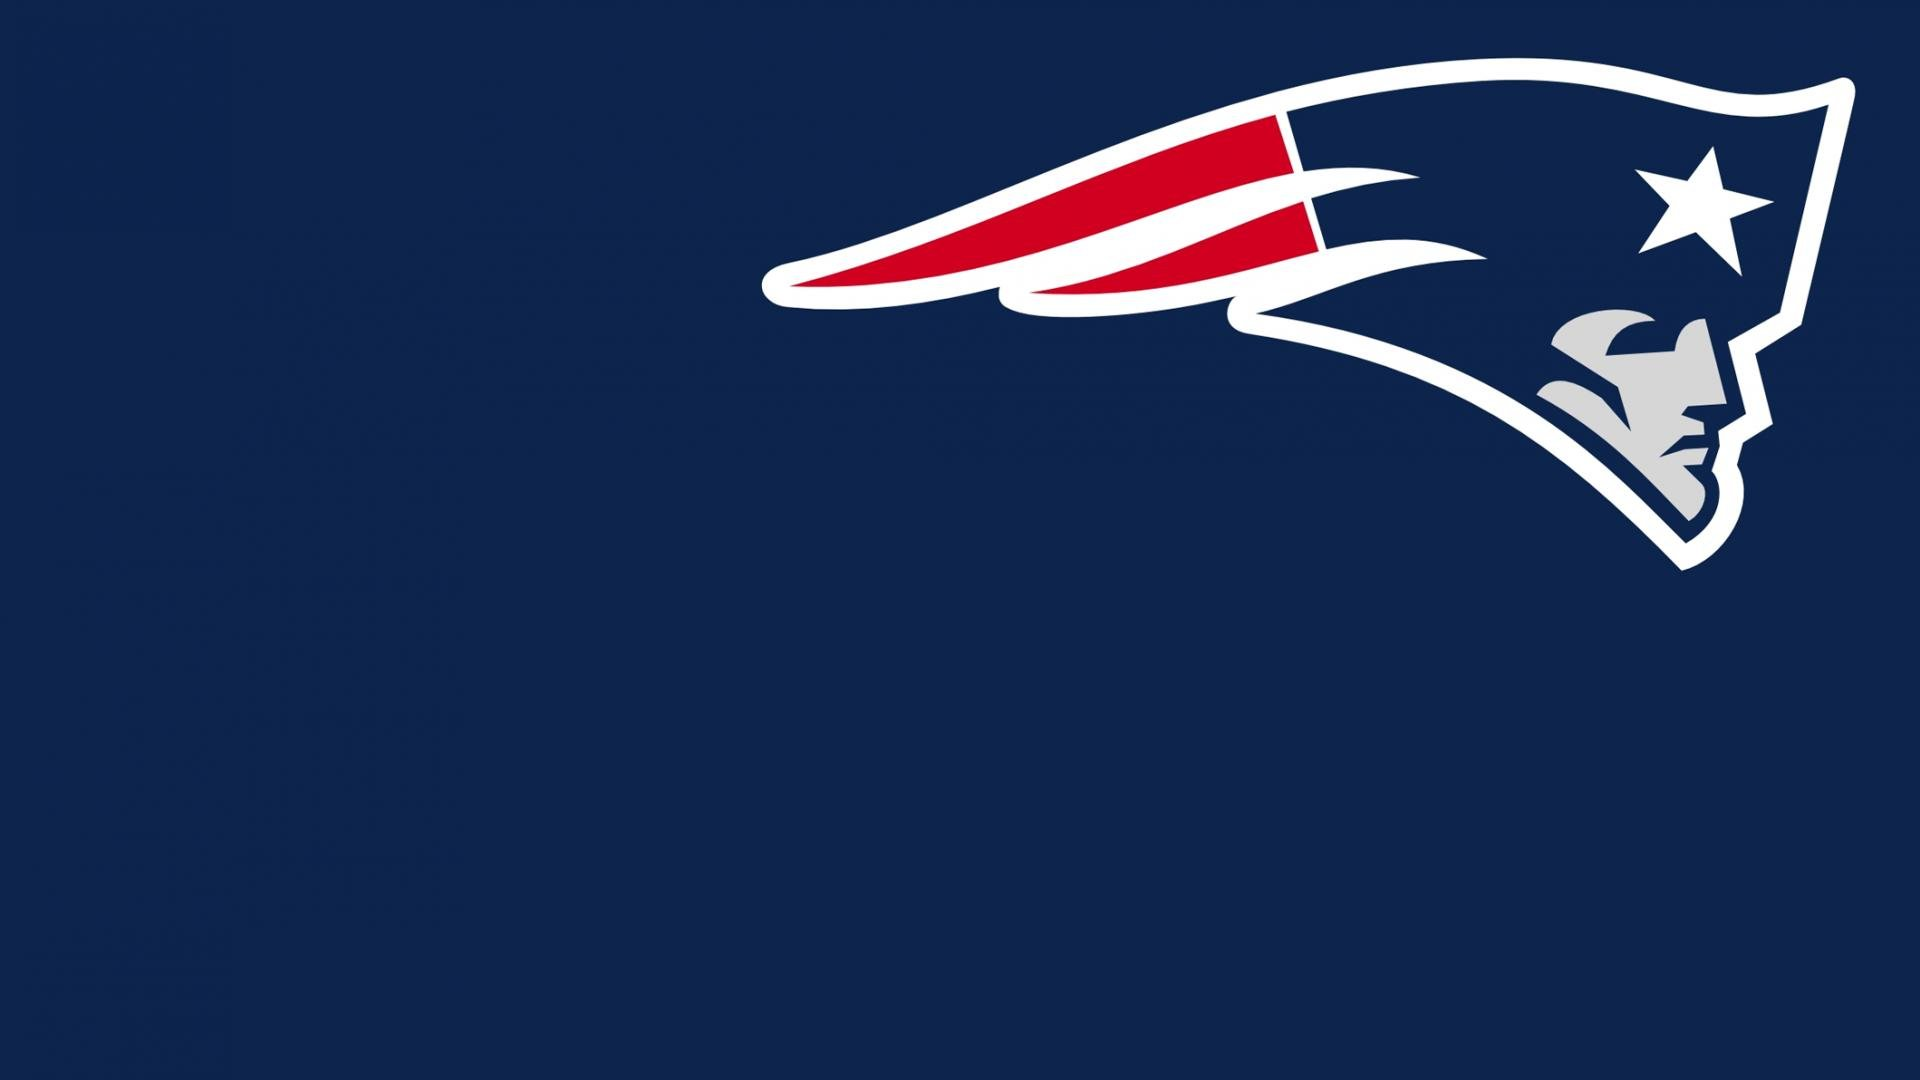 New England Patriots Profile, Hd Wallpapers & backgrounds.